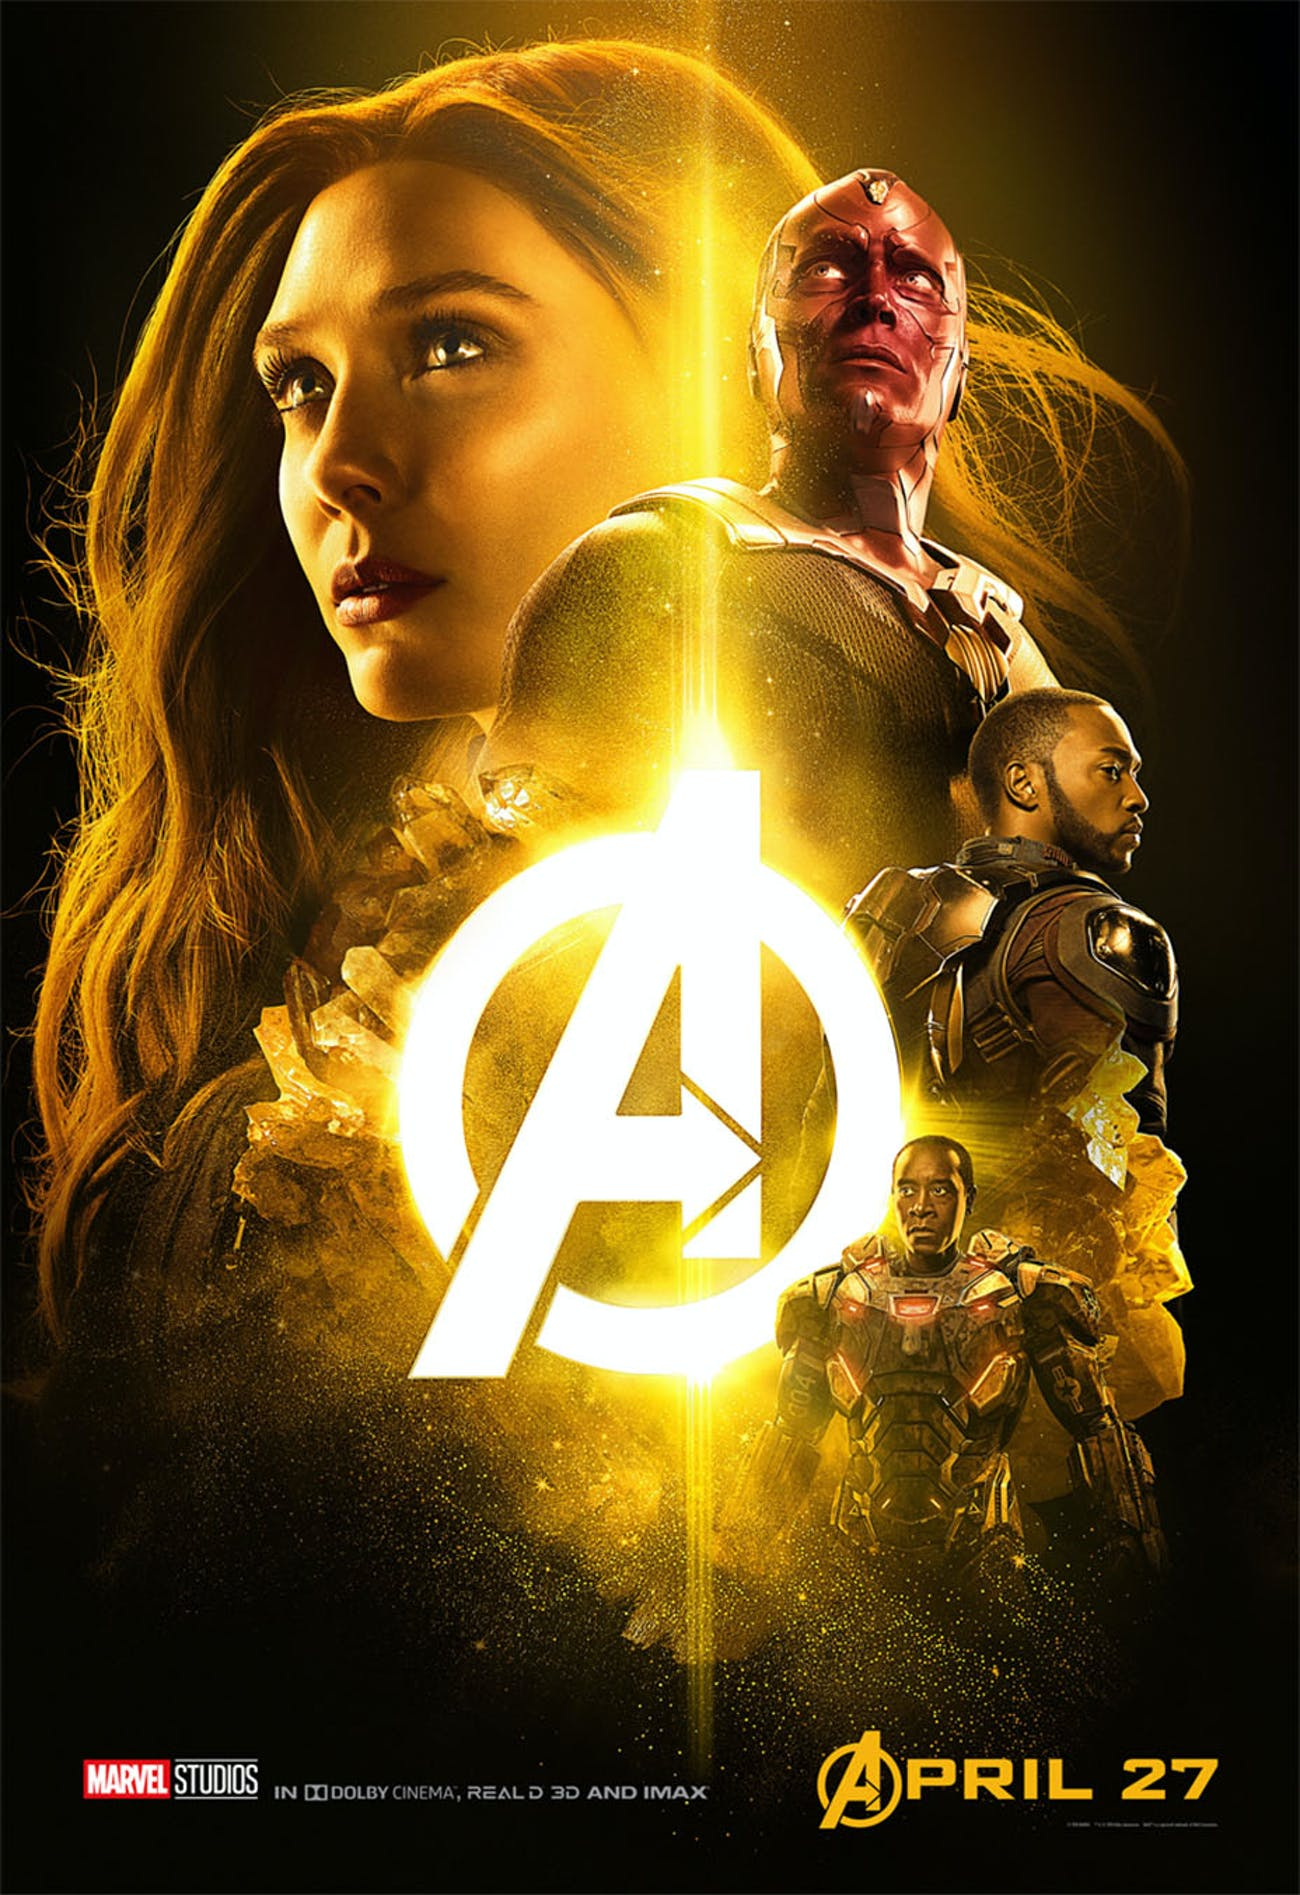 The yellow 'Infinity War' poster has Vision, Scarlet Witch, Falcon, and War Machine.